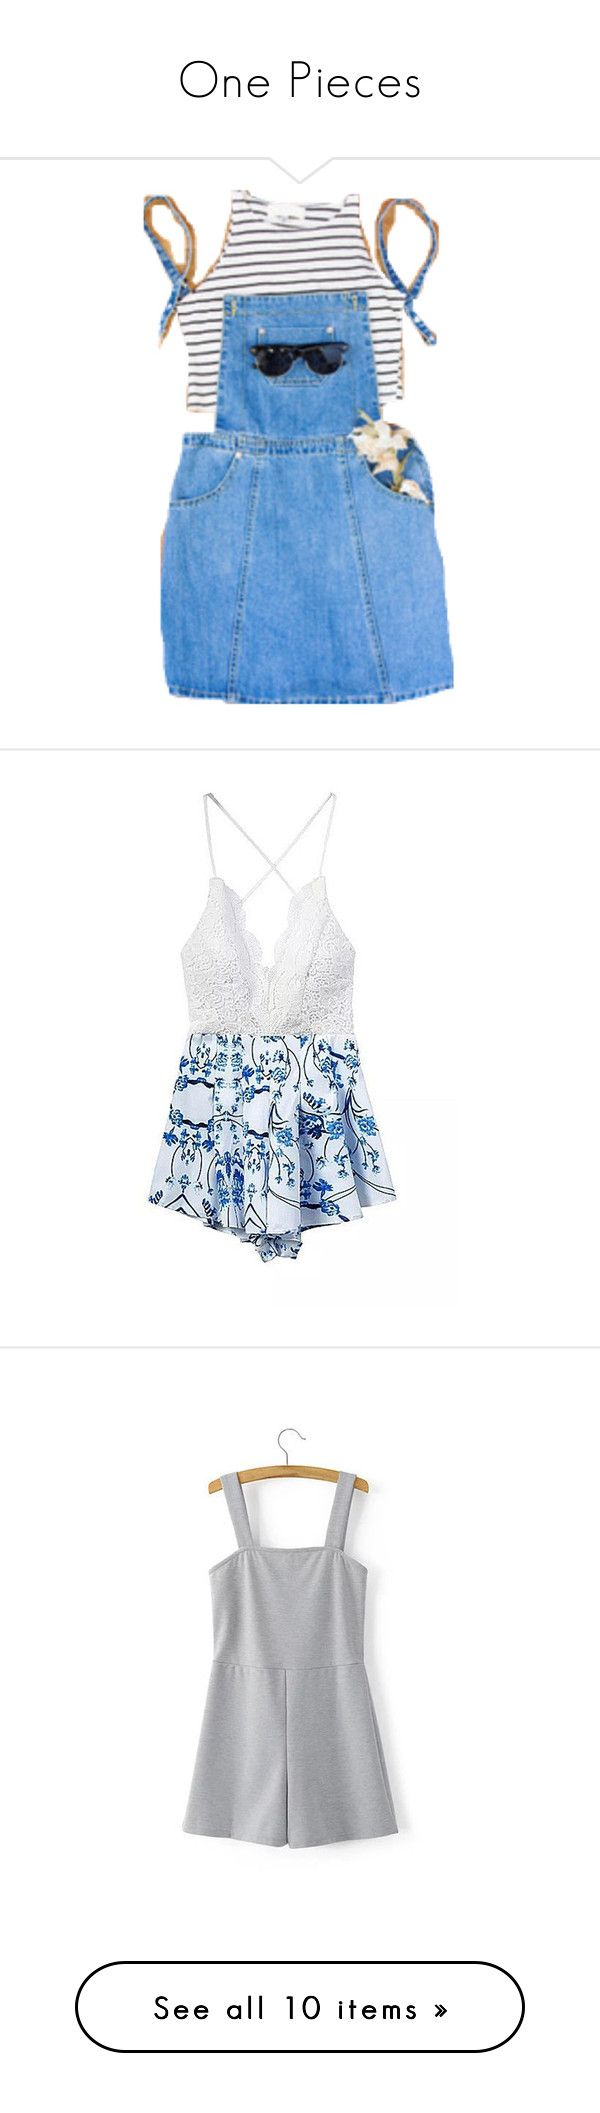 """One Pieces"" by xxpai ❤ liked on Polyvore featuring jumpsuits, rompers, dresses, playsuit, yoins, blue, floral jumpsuit, white jumpsuit, white lace rompers and white floral romper"